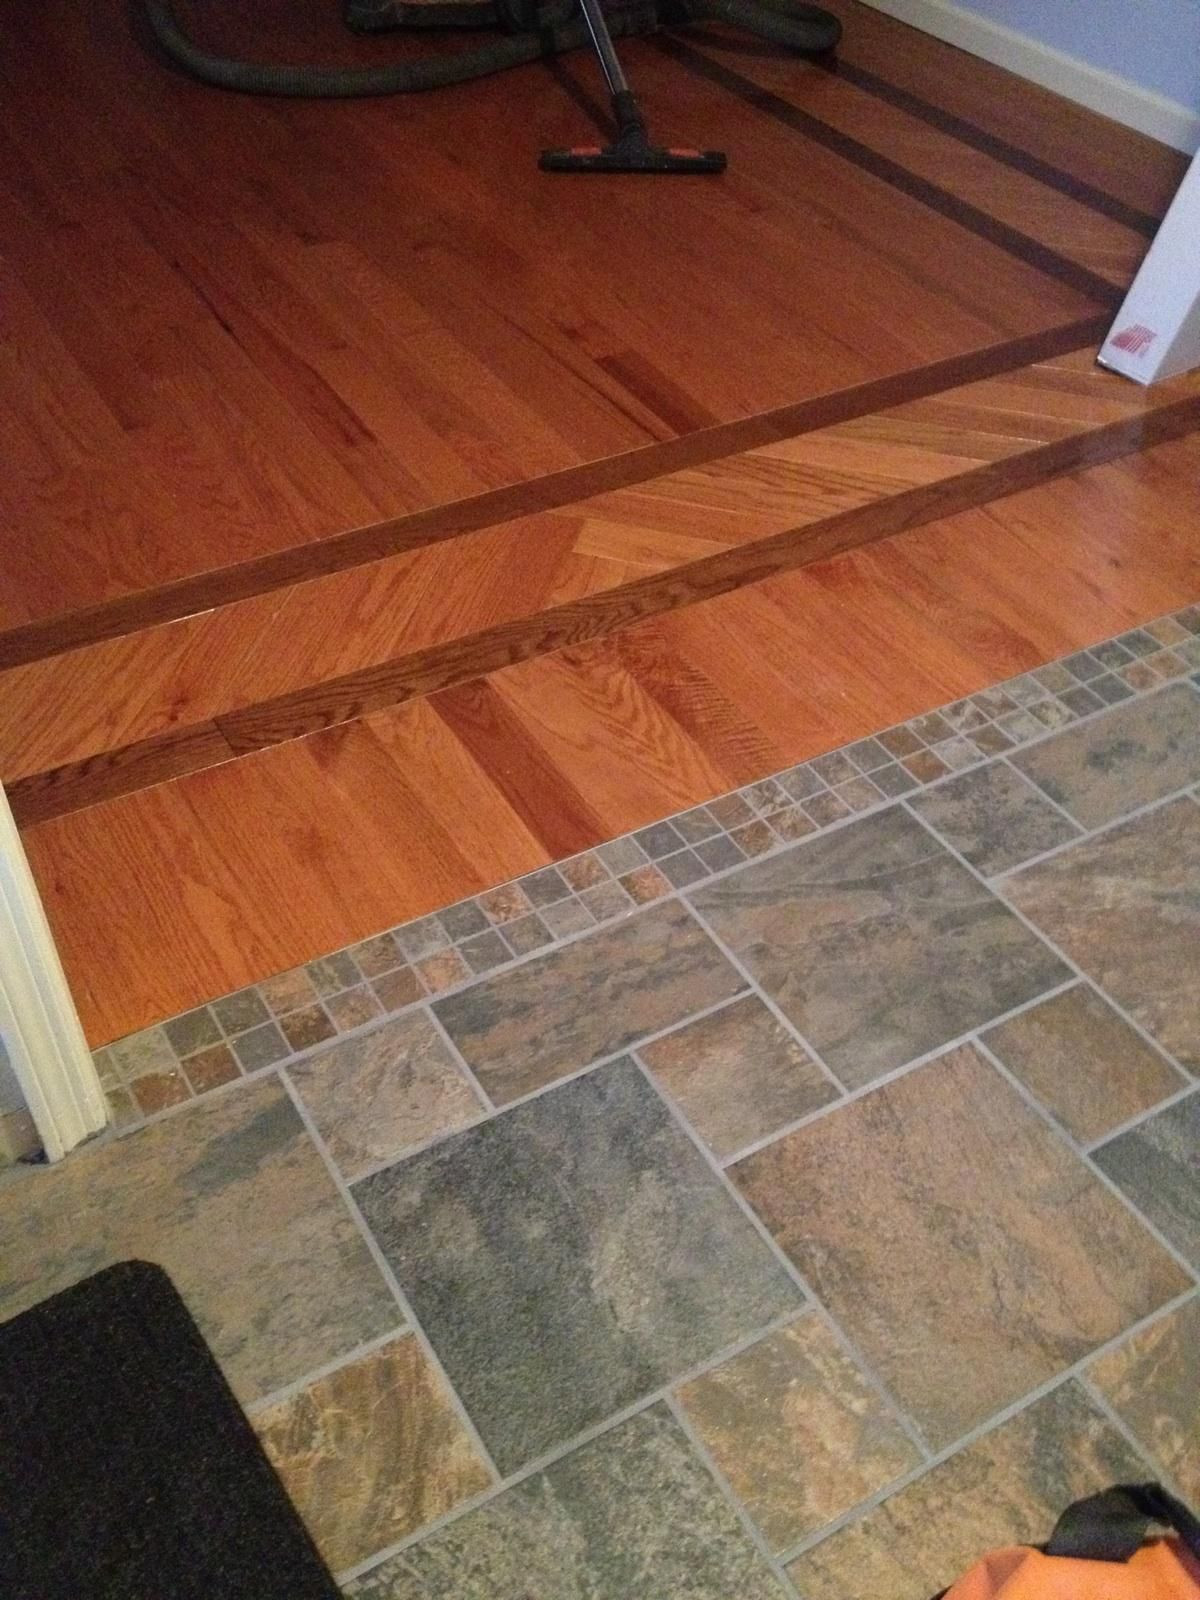 hardwood floor refinishing cherry hill nj of pinwheel slate floor entry foyer connected to hardwood floor with with regard to pinwheel slate floor entry foyer connected to hardwood floor with banded border using a 45deg offset